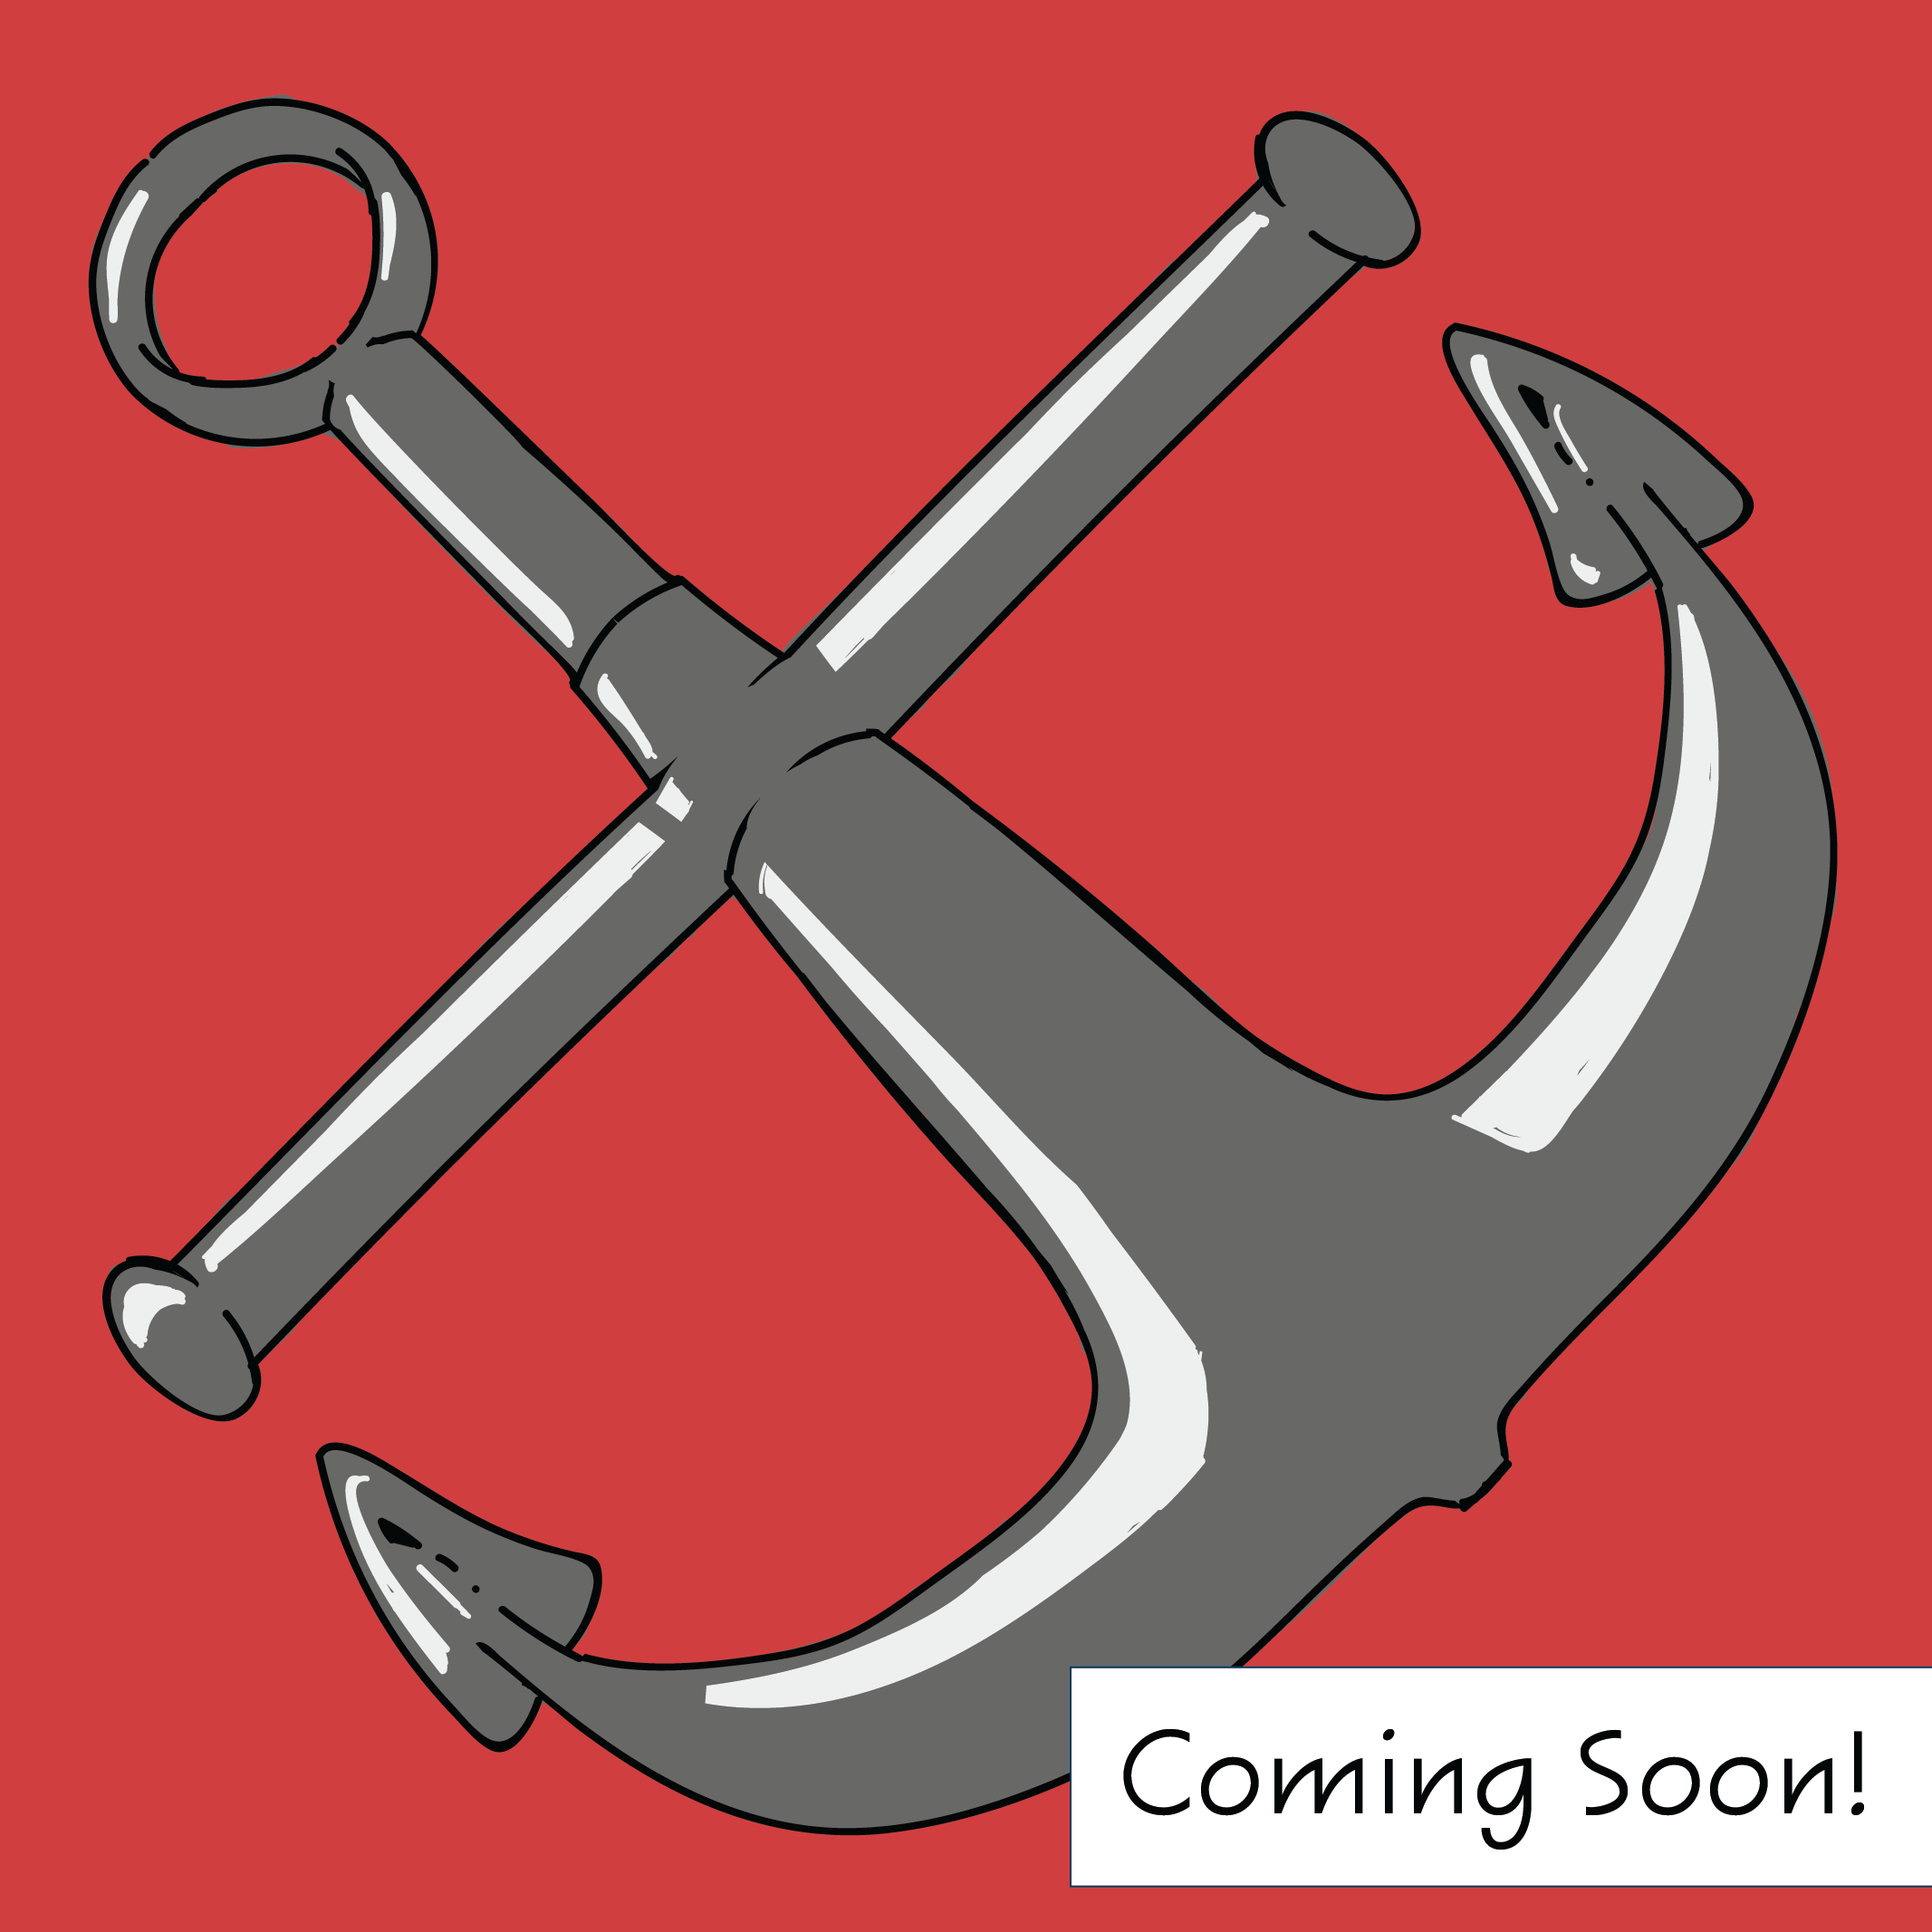 Anchor Toss - Coming Soon